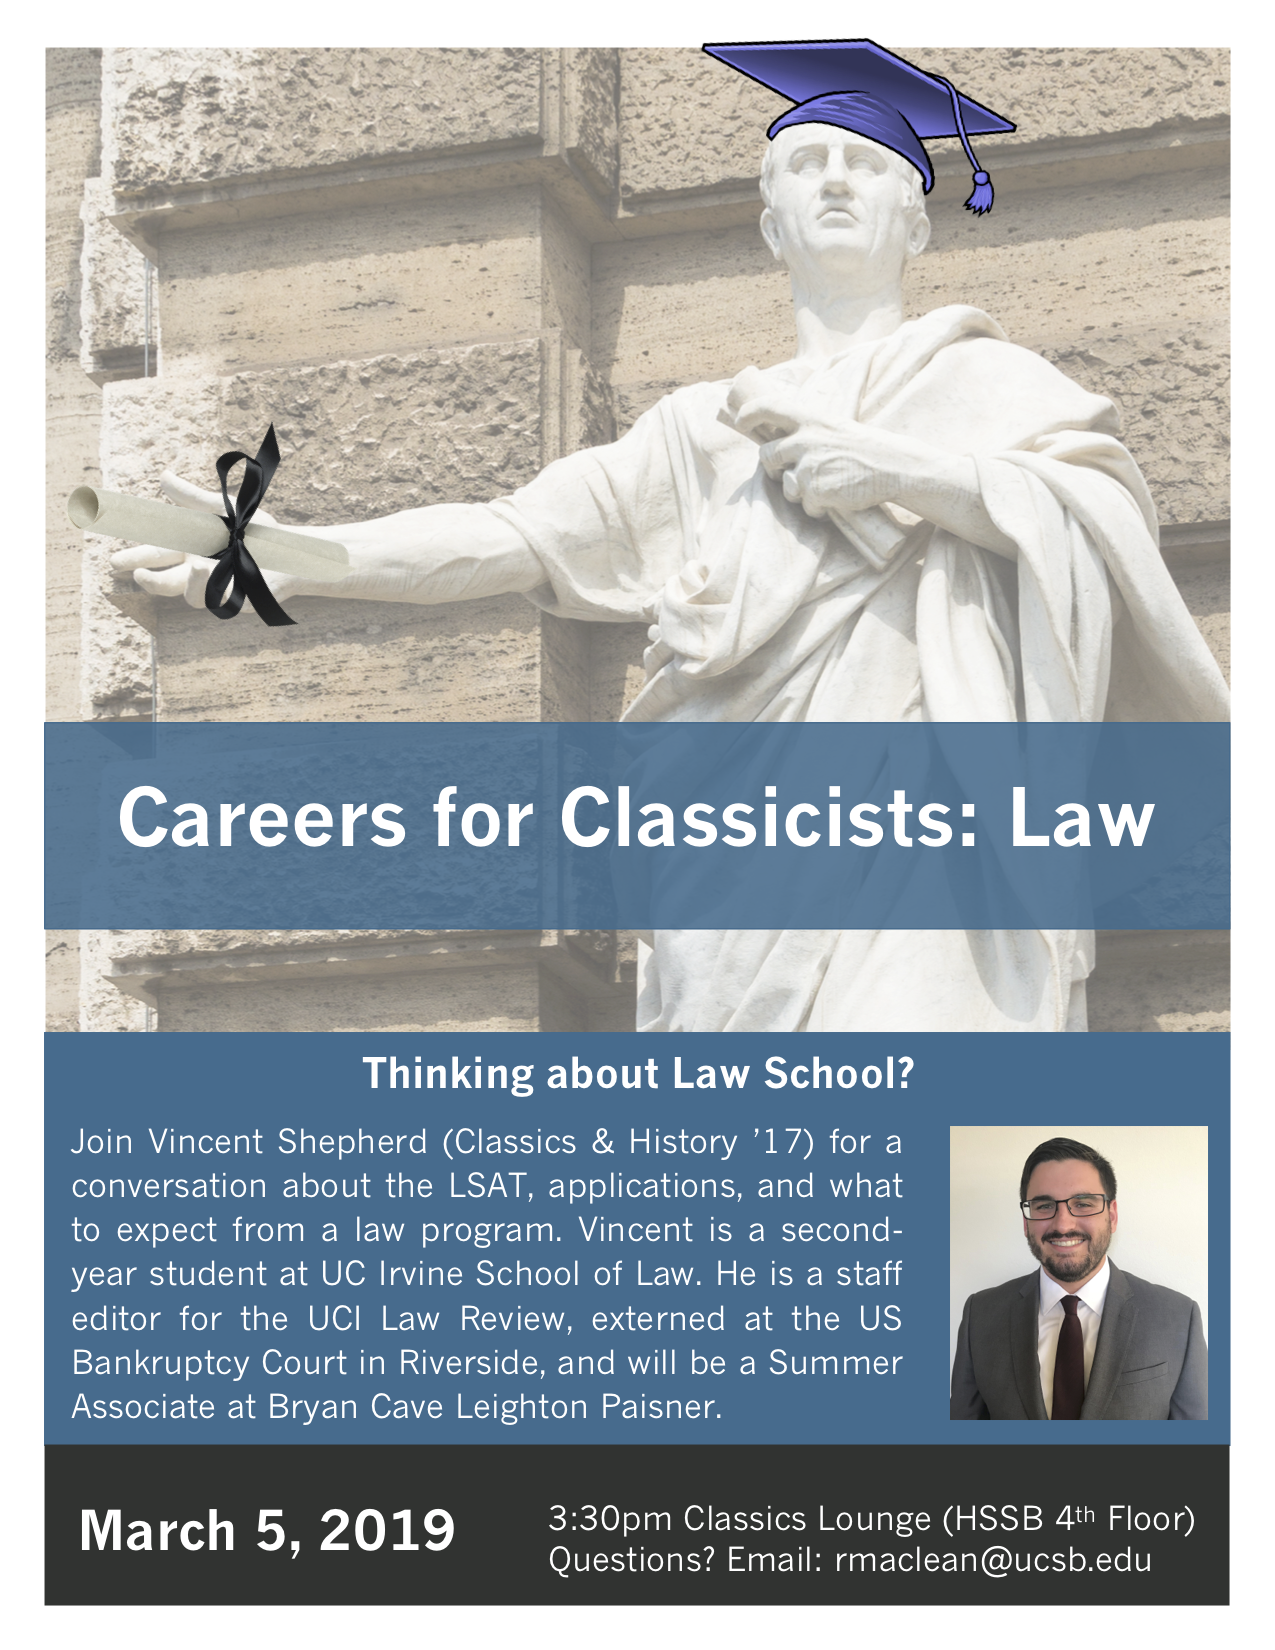 Careers for Classicists: Law - A Conversation with Vincent Shepherd (Classics & History '17) @ Classics Lounge - HSSB 4072